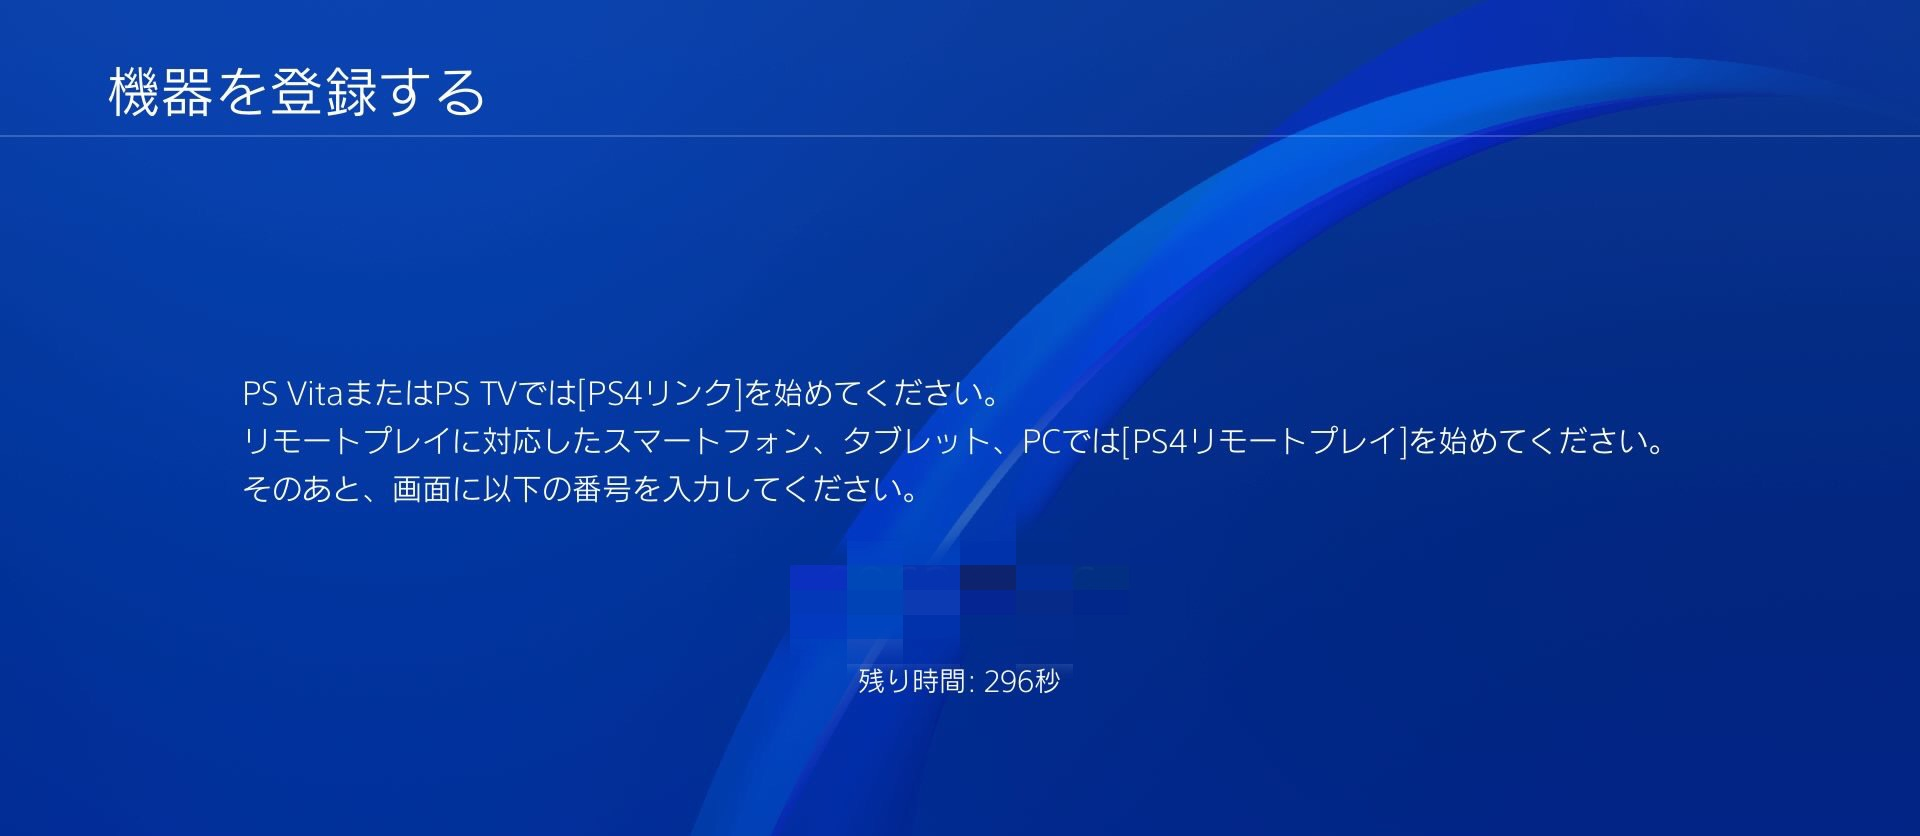 Ps4 ミラティブ 配信